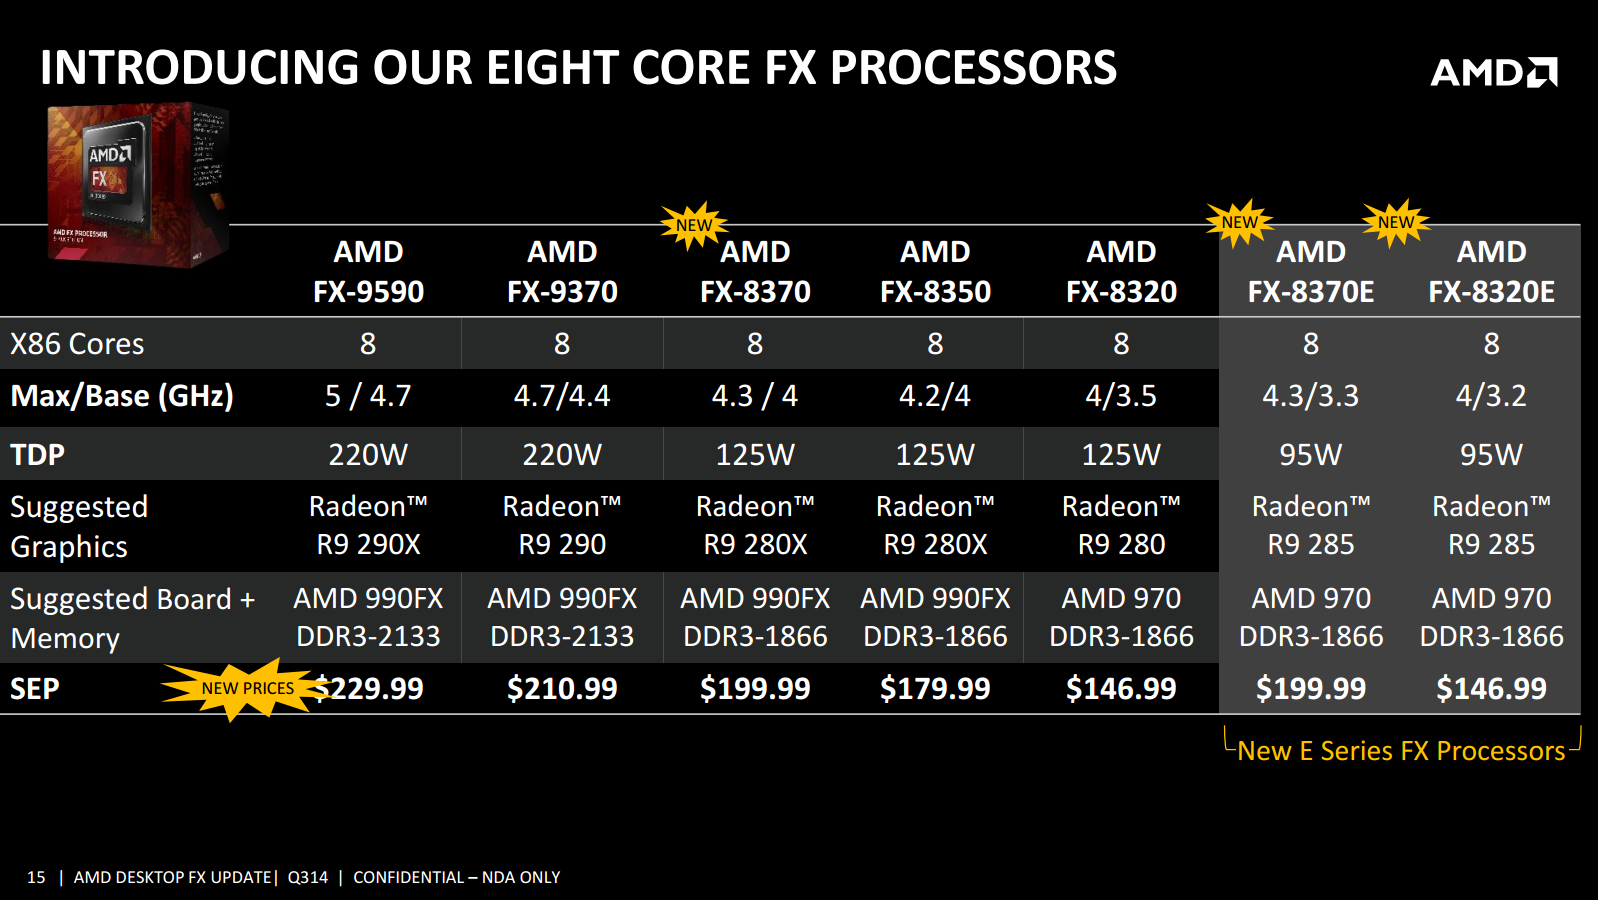 AMD Launches x86 Piledriver Based 125W FX-8370 and 95W FX-8370E, FX